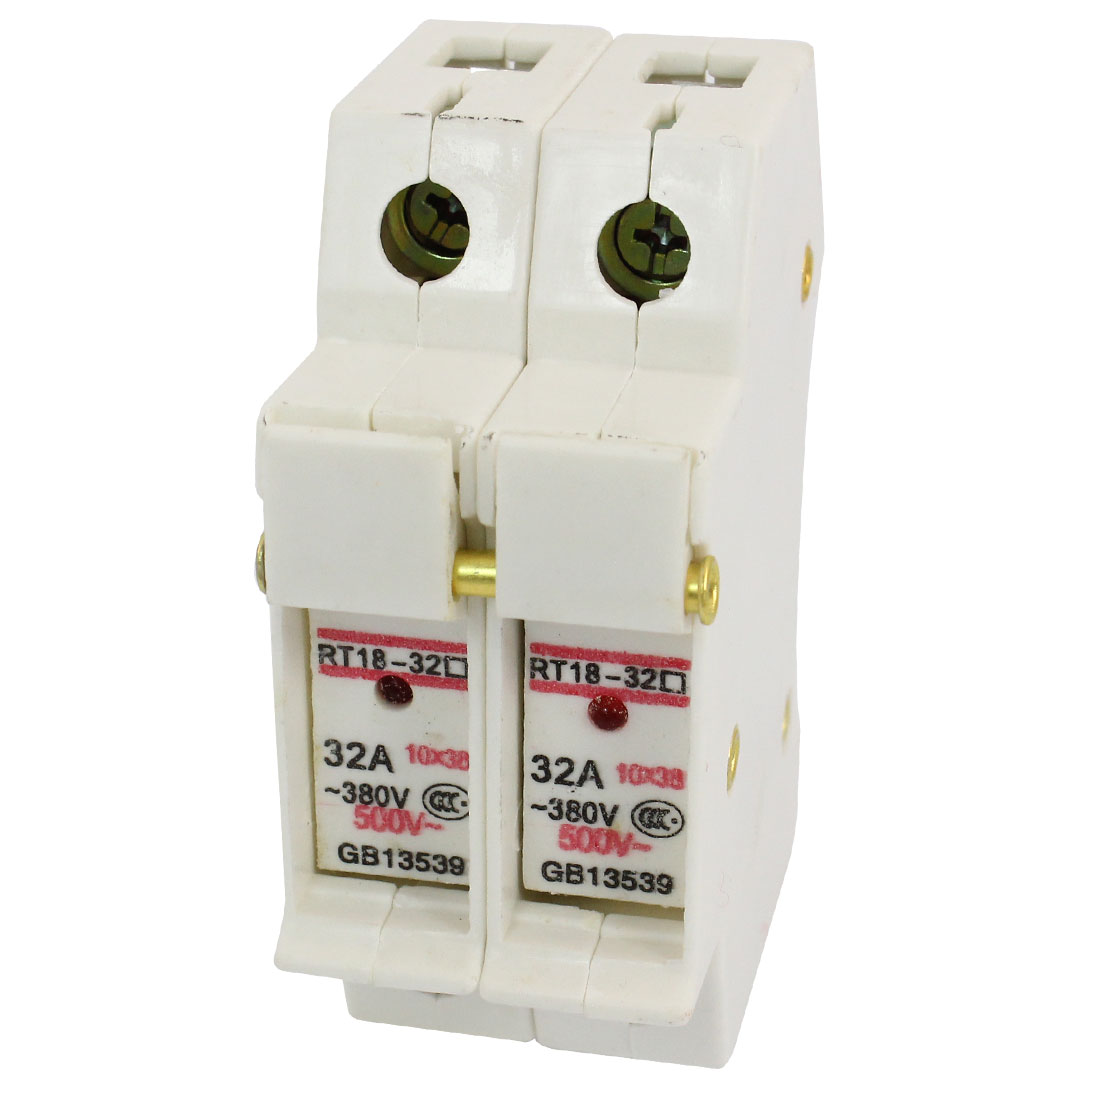 RT18-32 Model 10mm x 38mm Double Pole Fuse Holder White AC 500/380V 32A